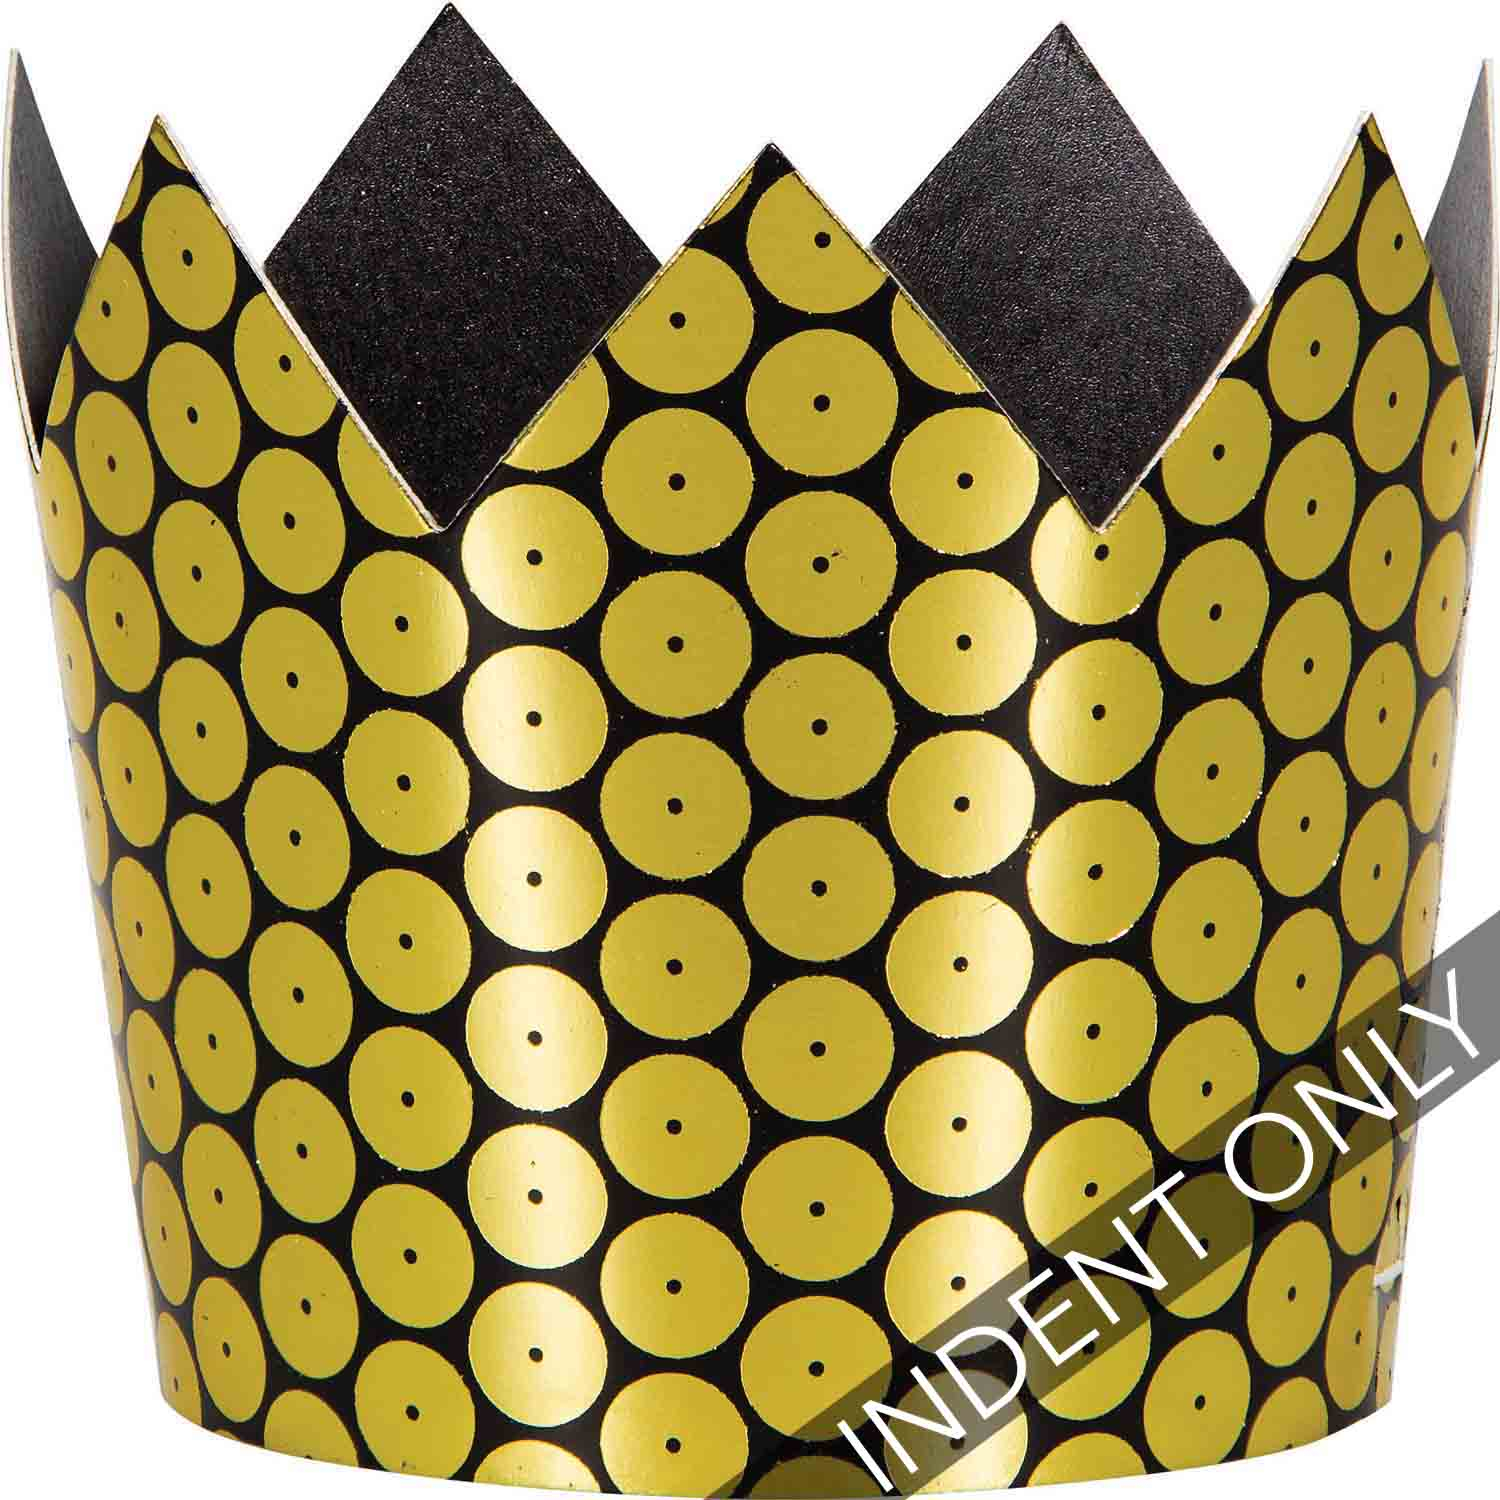 Gold Foil Decor Crowns